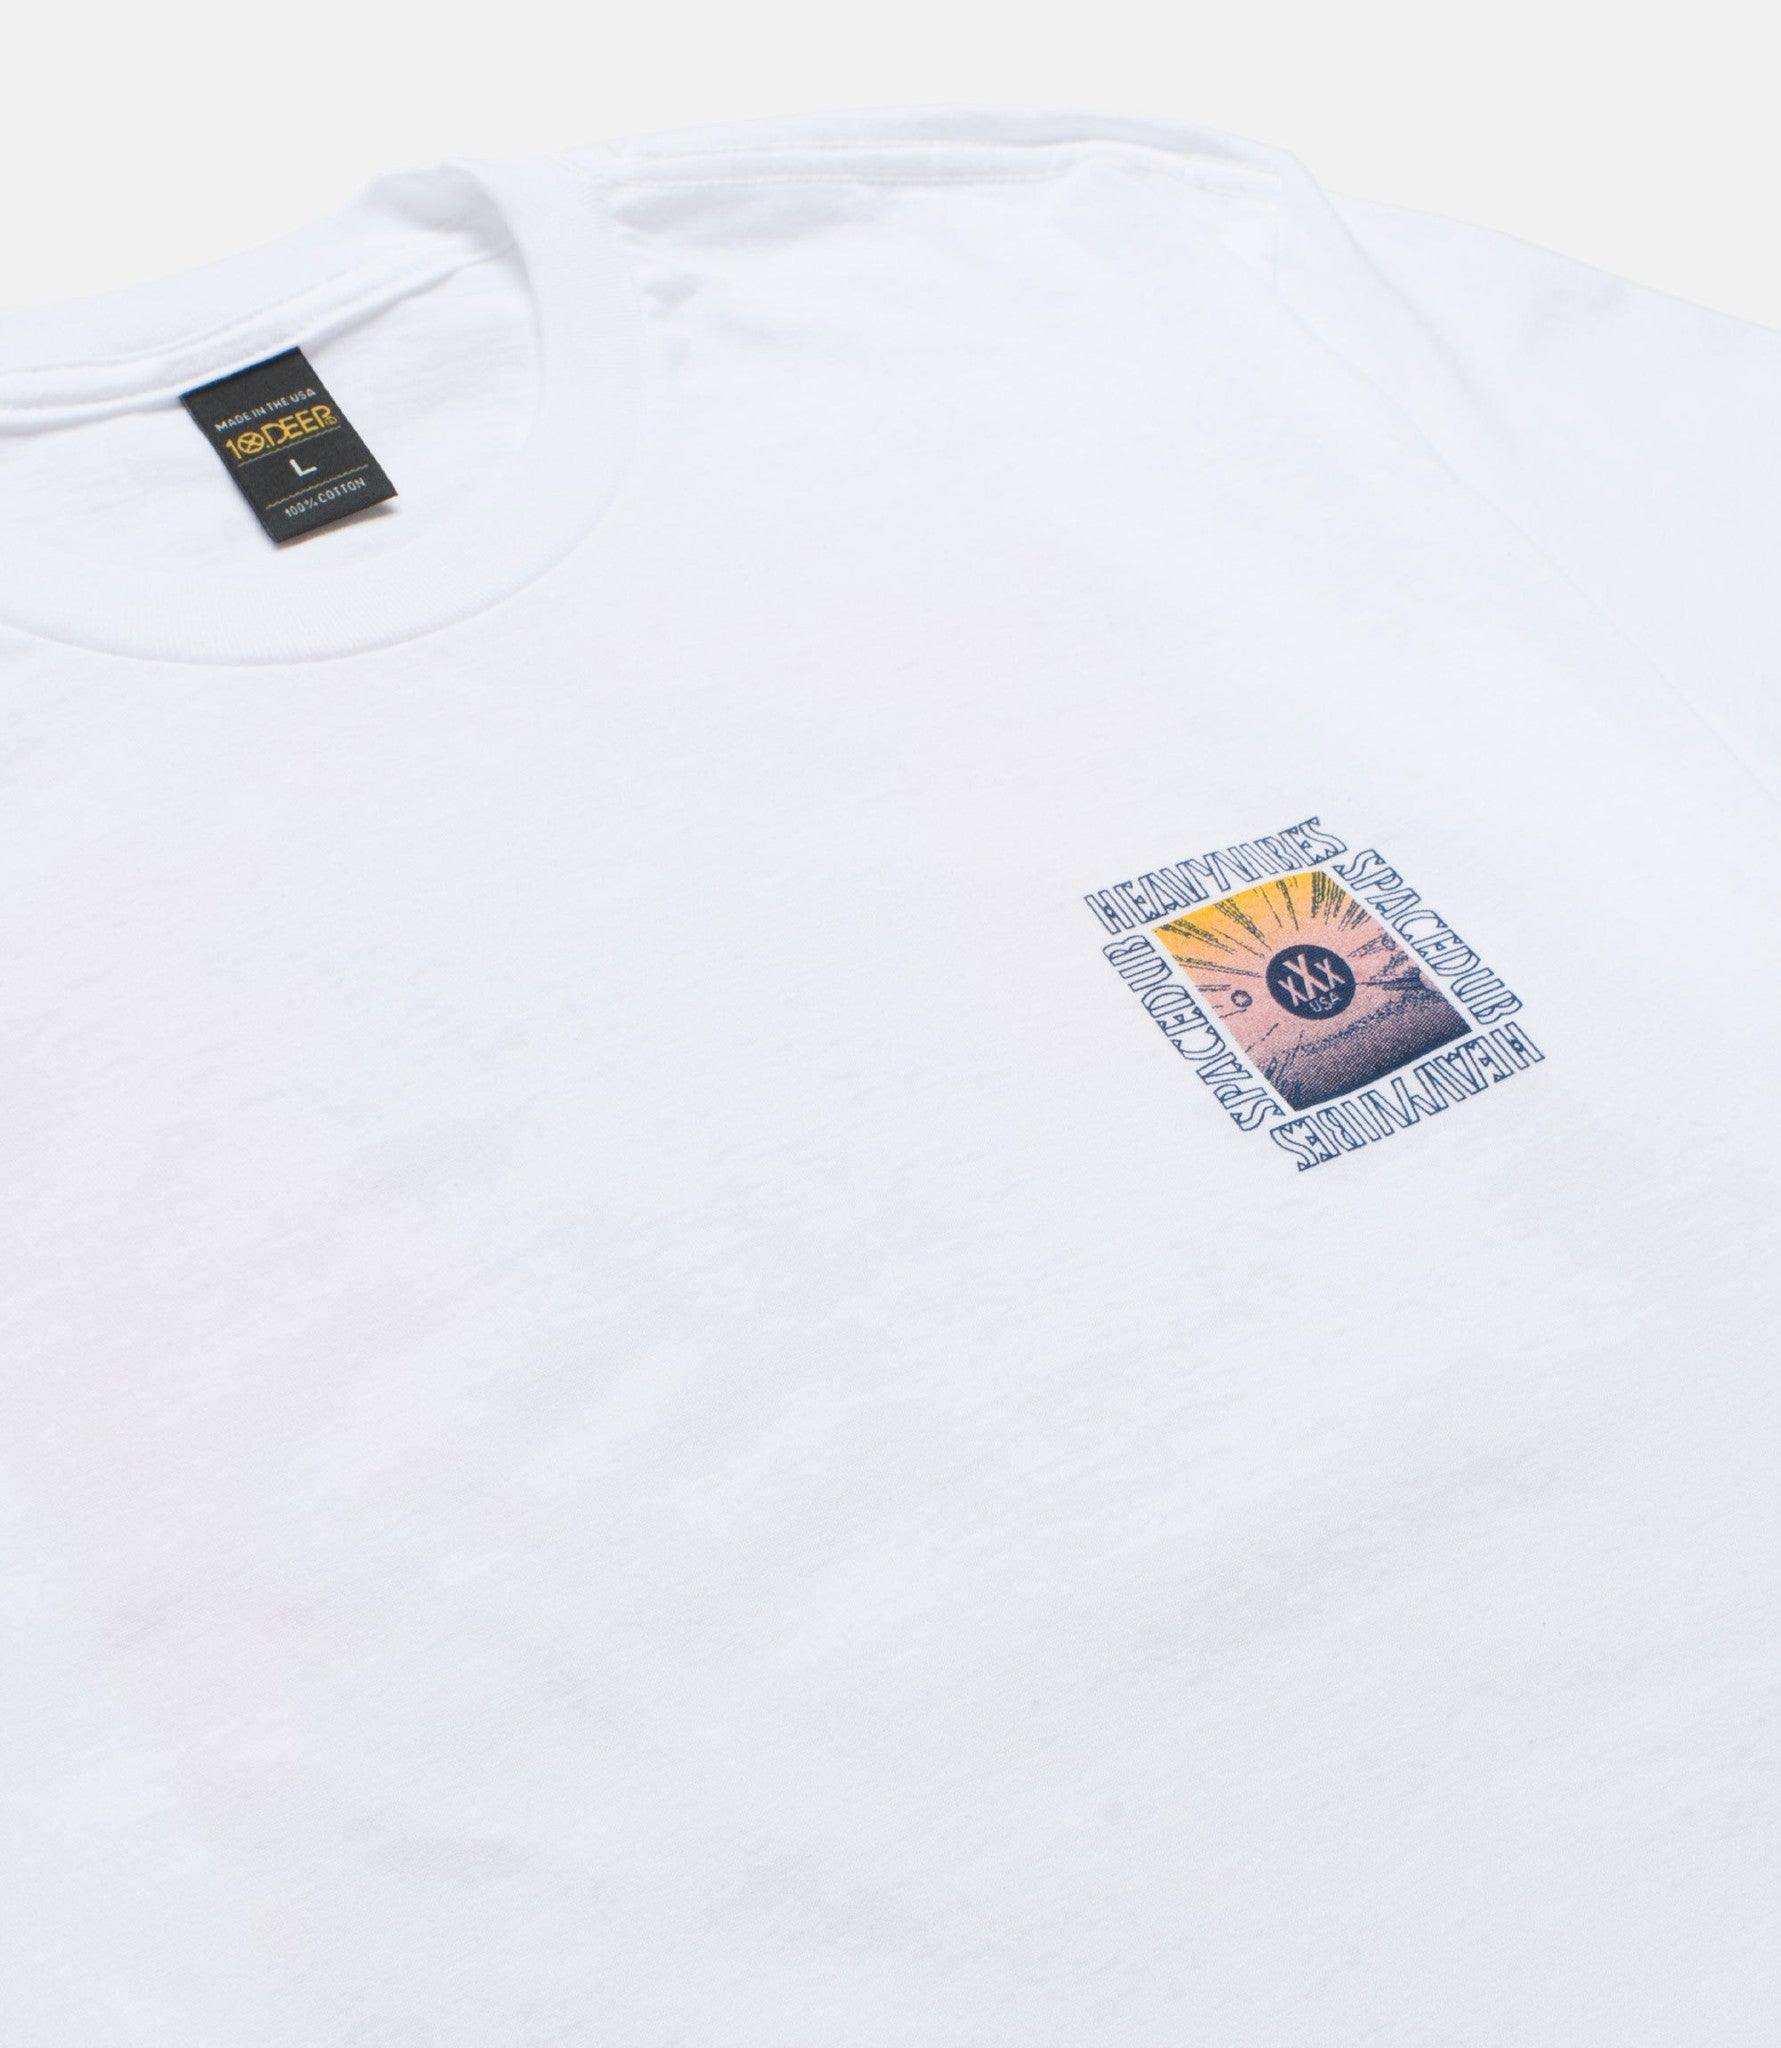 10Deep - Space Vibes Men's Tee, White - The Giant Peach - 4